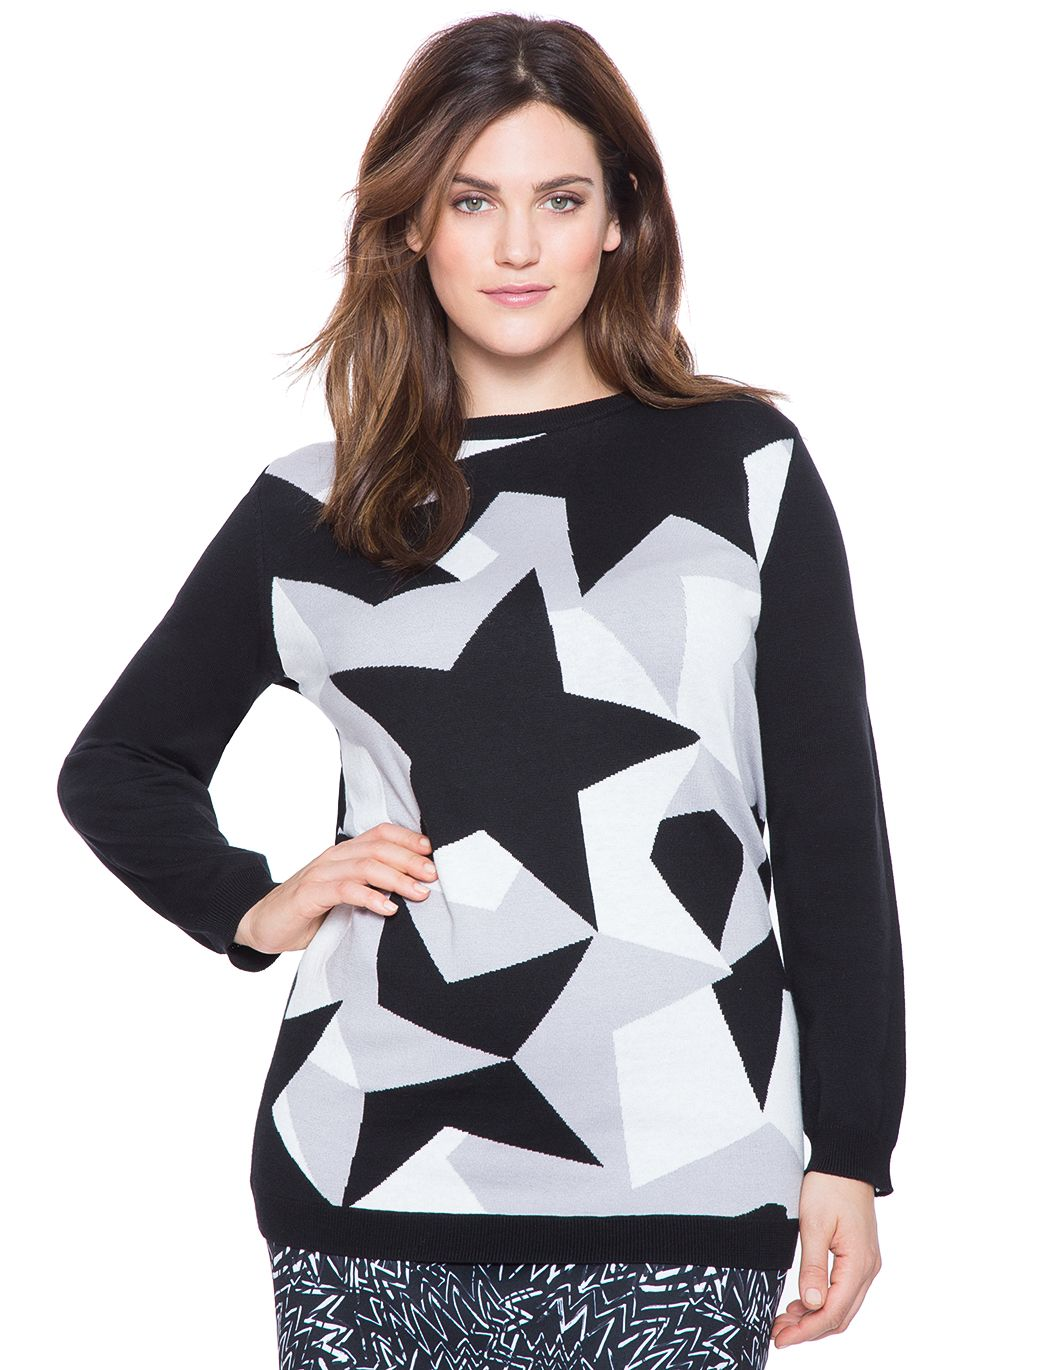 a535e2f772153 View our Studio All Over Stars Sweater and shop our selection of designer women s  plus size Tops